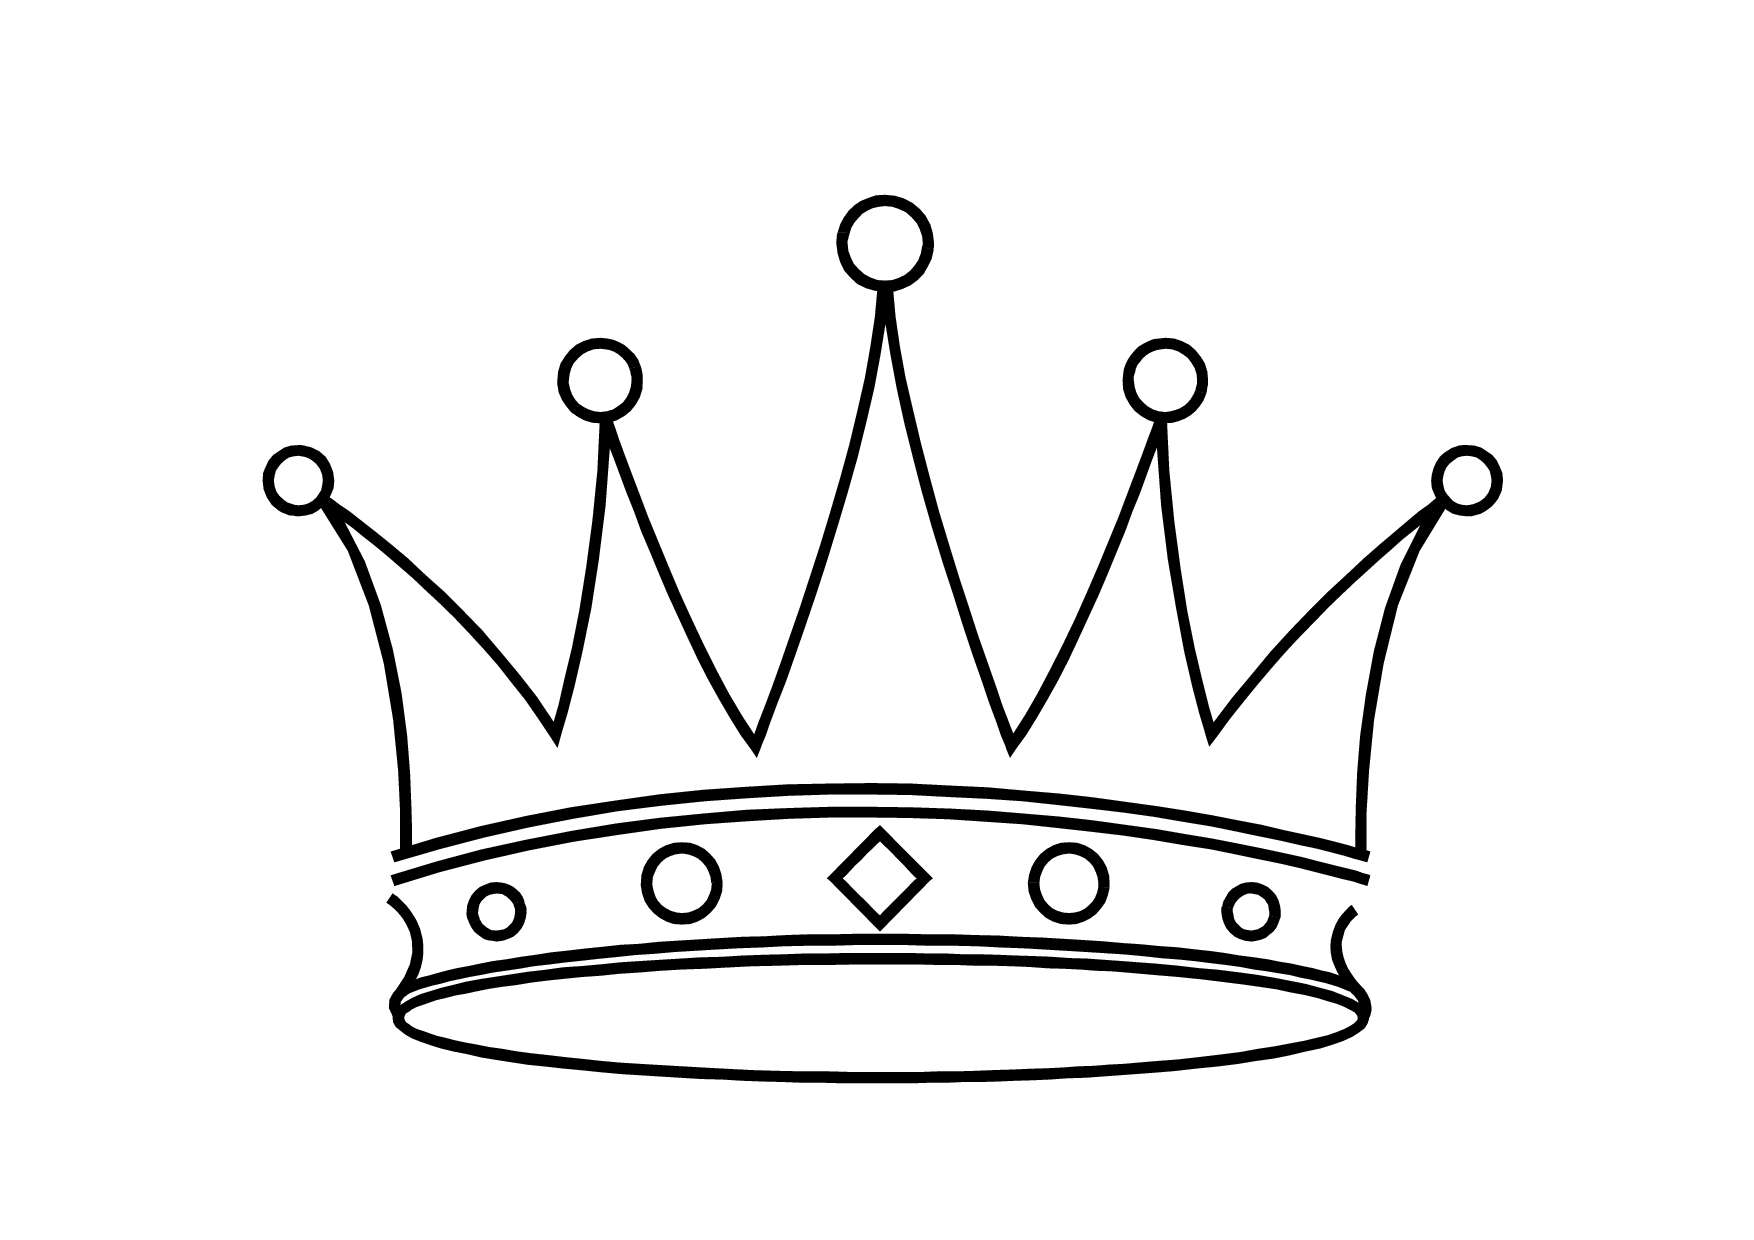 king crown coloring page king crown clipart coloring pictures on cliparts pub 2020 coloring king page crown